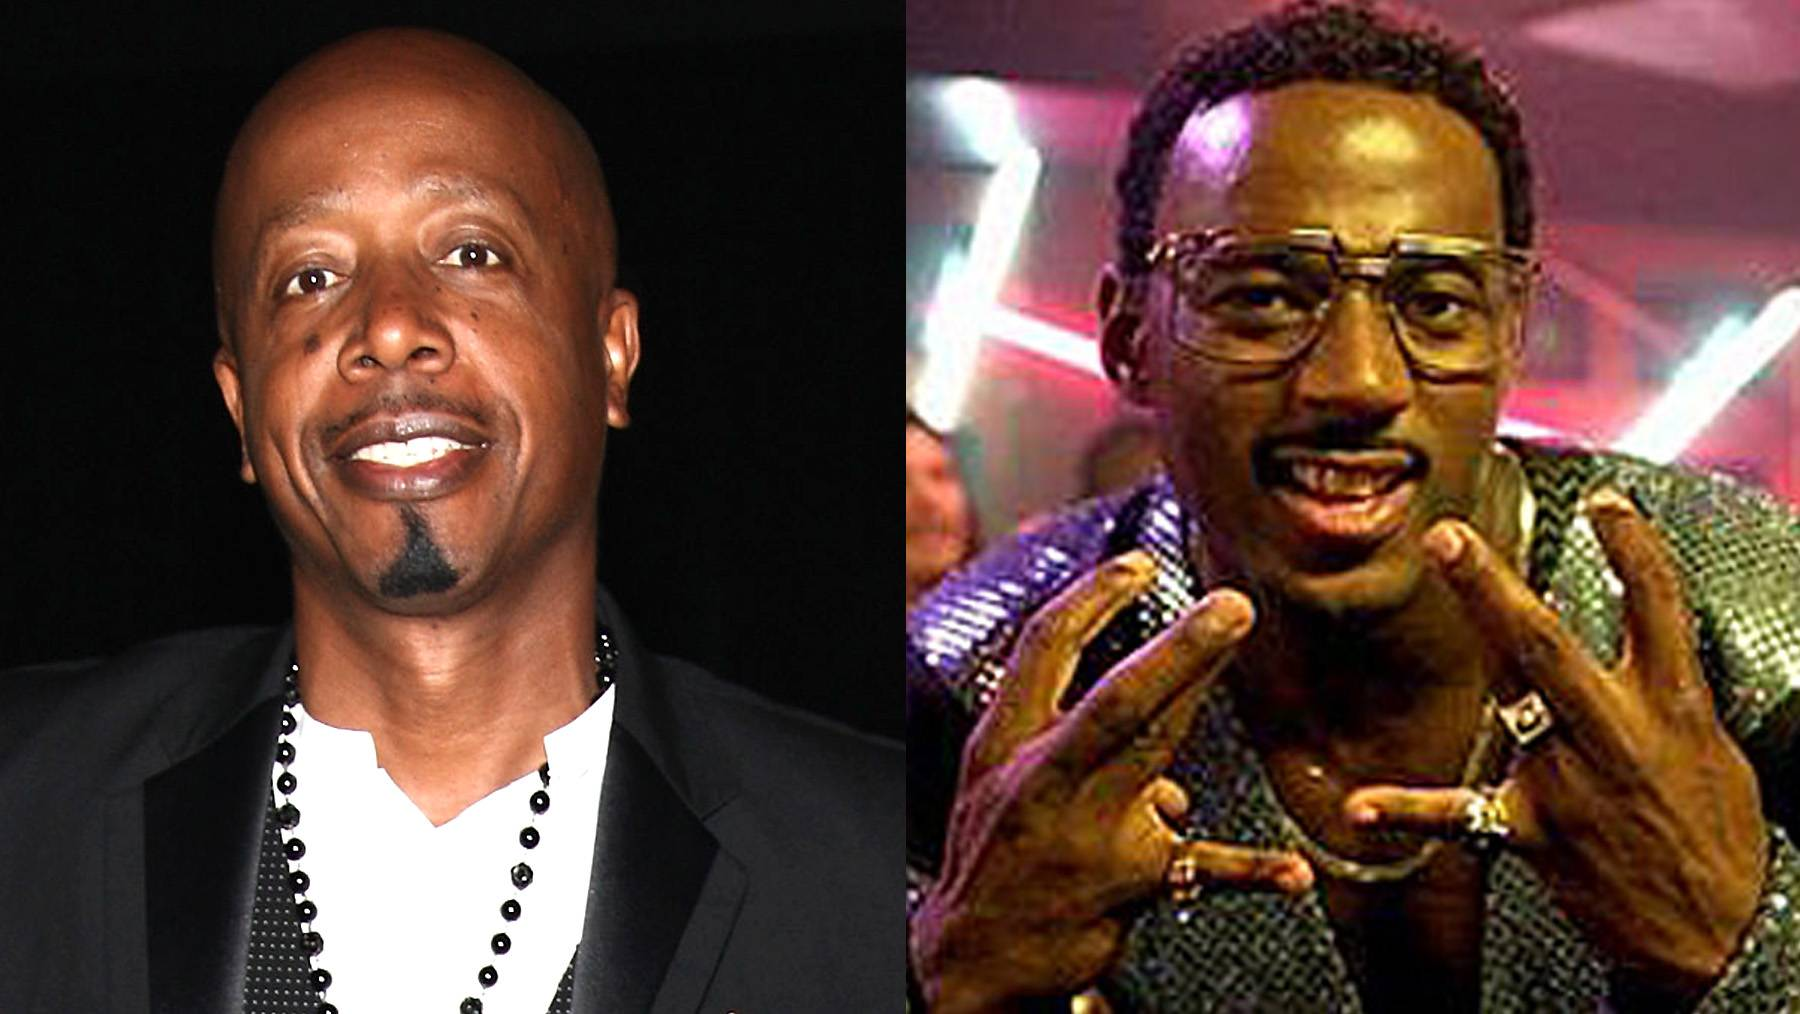 Too Legit: The MC Hammer Story - Think Like a Man actor Romany Malco put on the parachute pants and Cazal glasses for this 2001made-for-TV flick. It follows the veteran rapper's career from a bat boy for the Oakland A's to headlining arenas across the country. Italso covers his financial woes and his tenure rolling with Death Row Records.(Photos from left: Paul Zimmerman/Getty Images for TechCrunch/AOL, VH1)